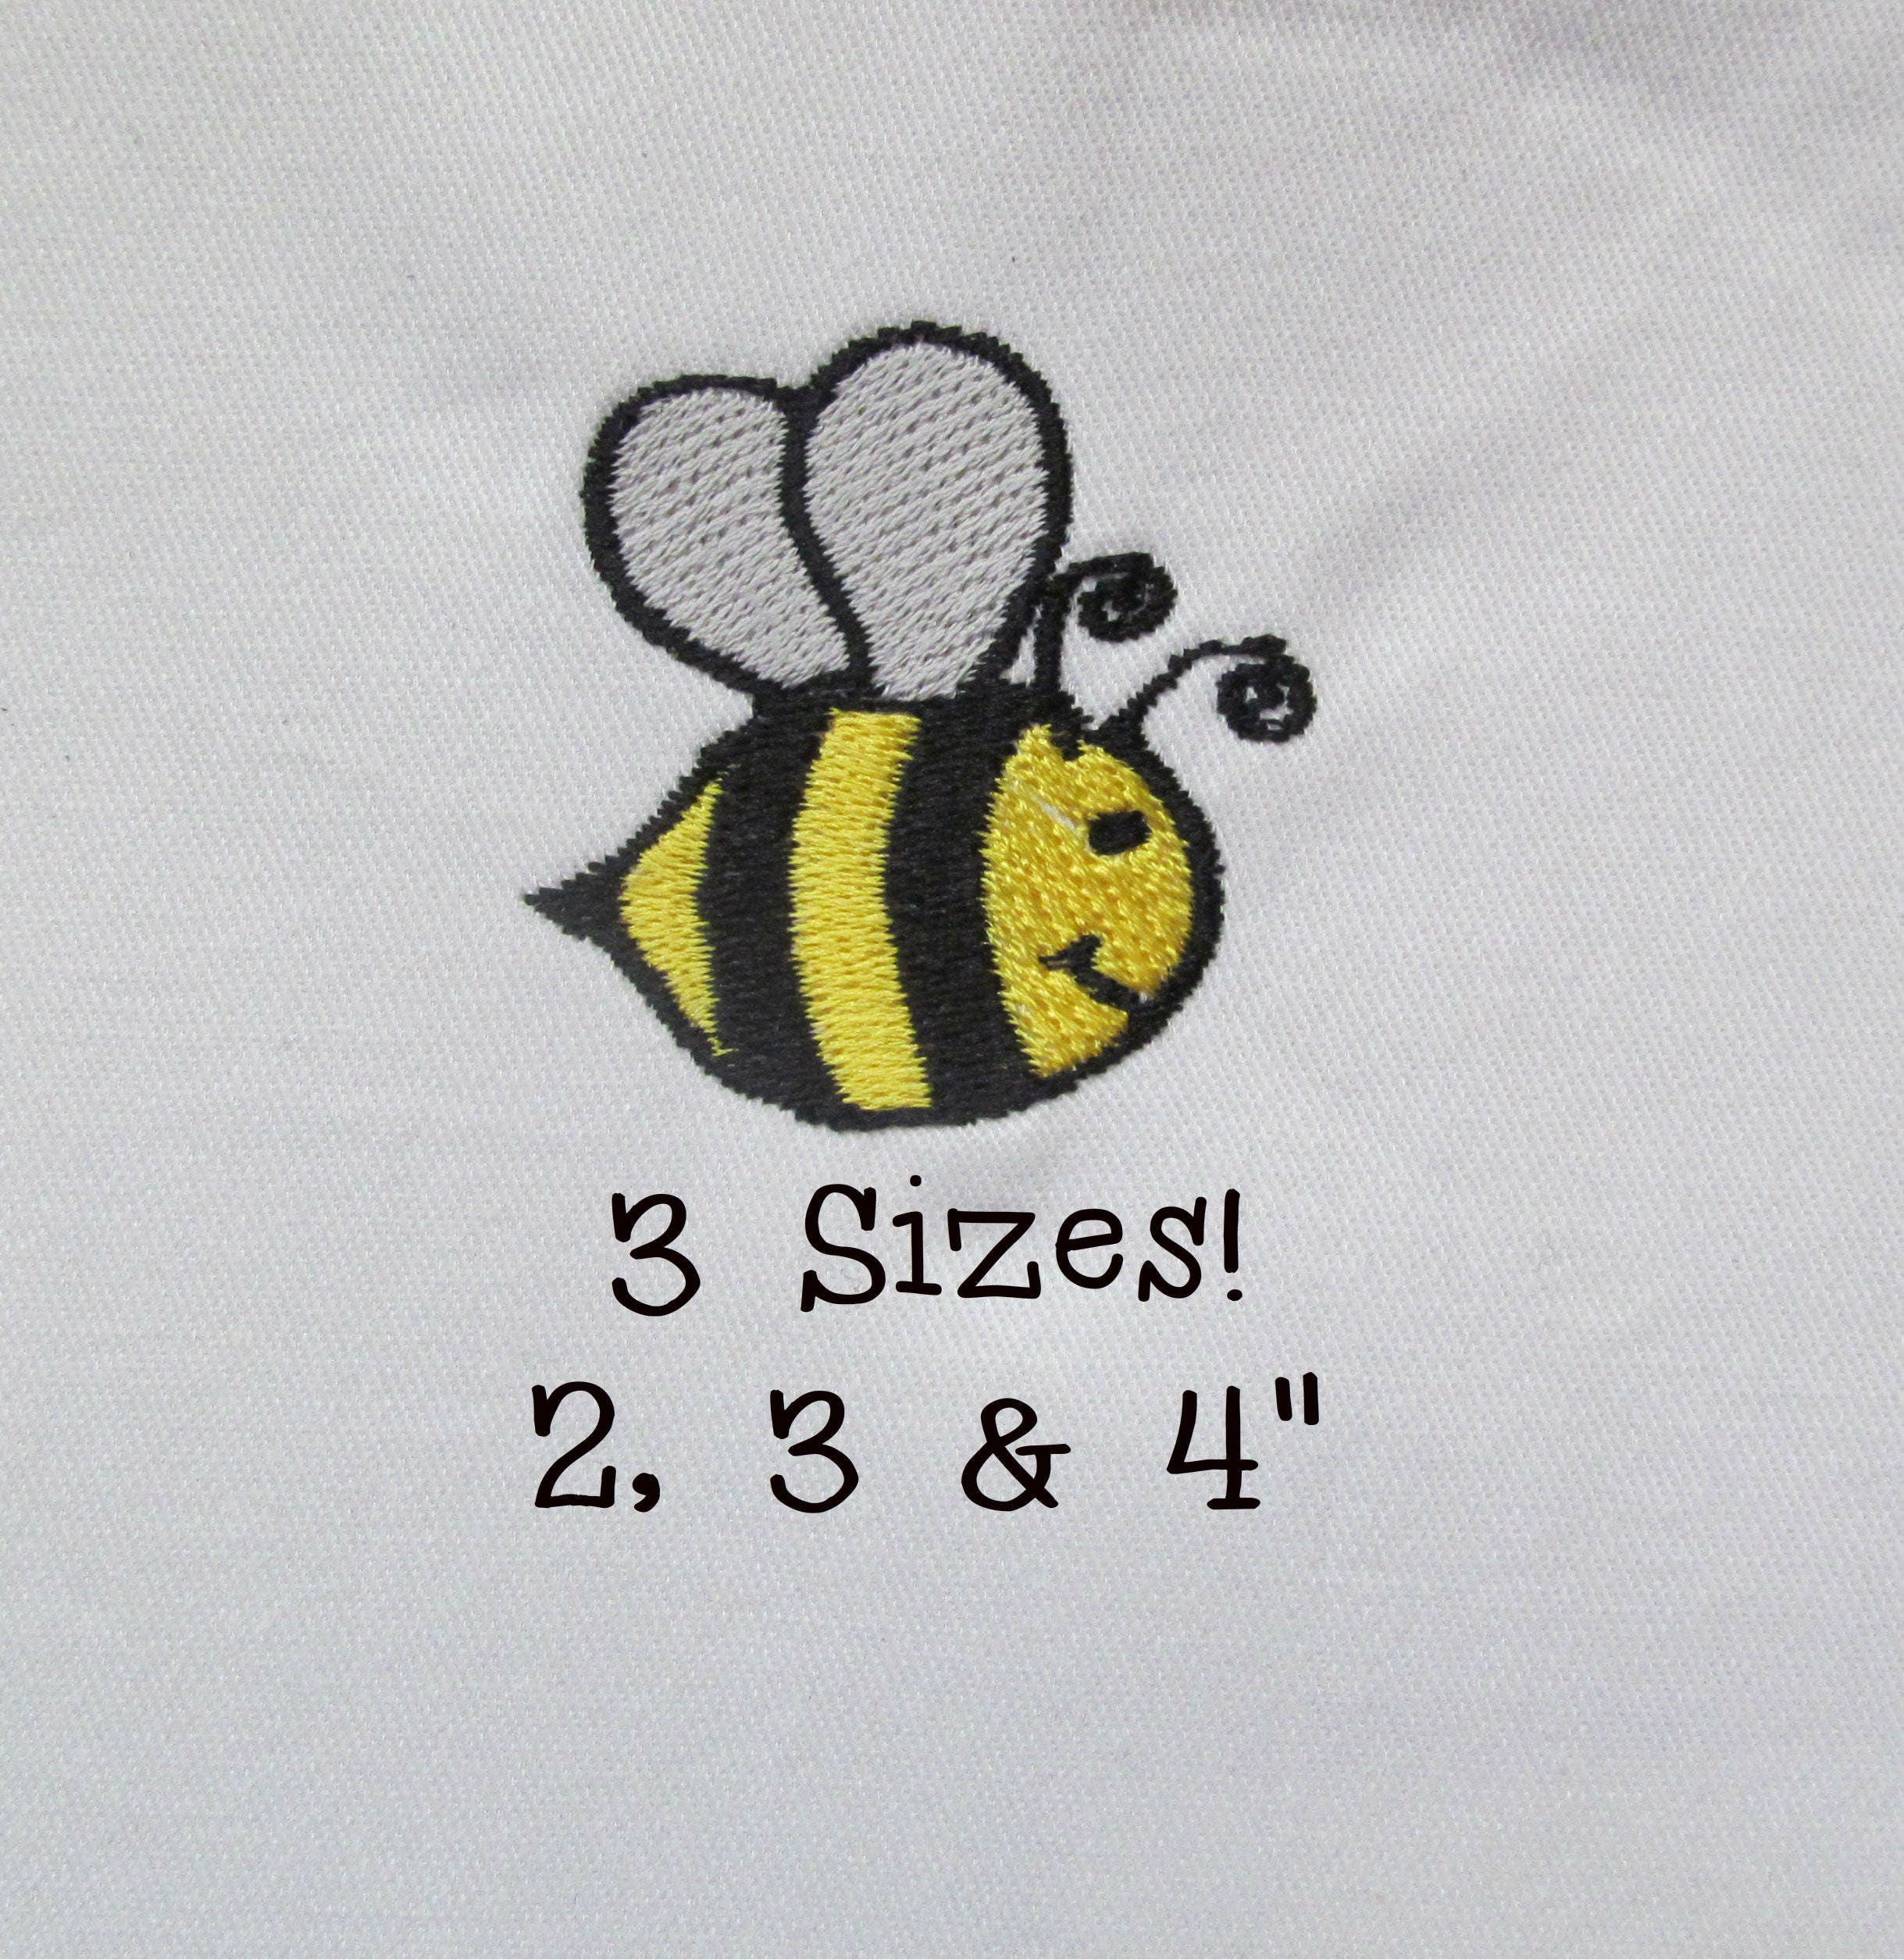 buy 1 get 1 free bumble bee embroidery design small bumble bee